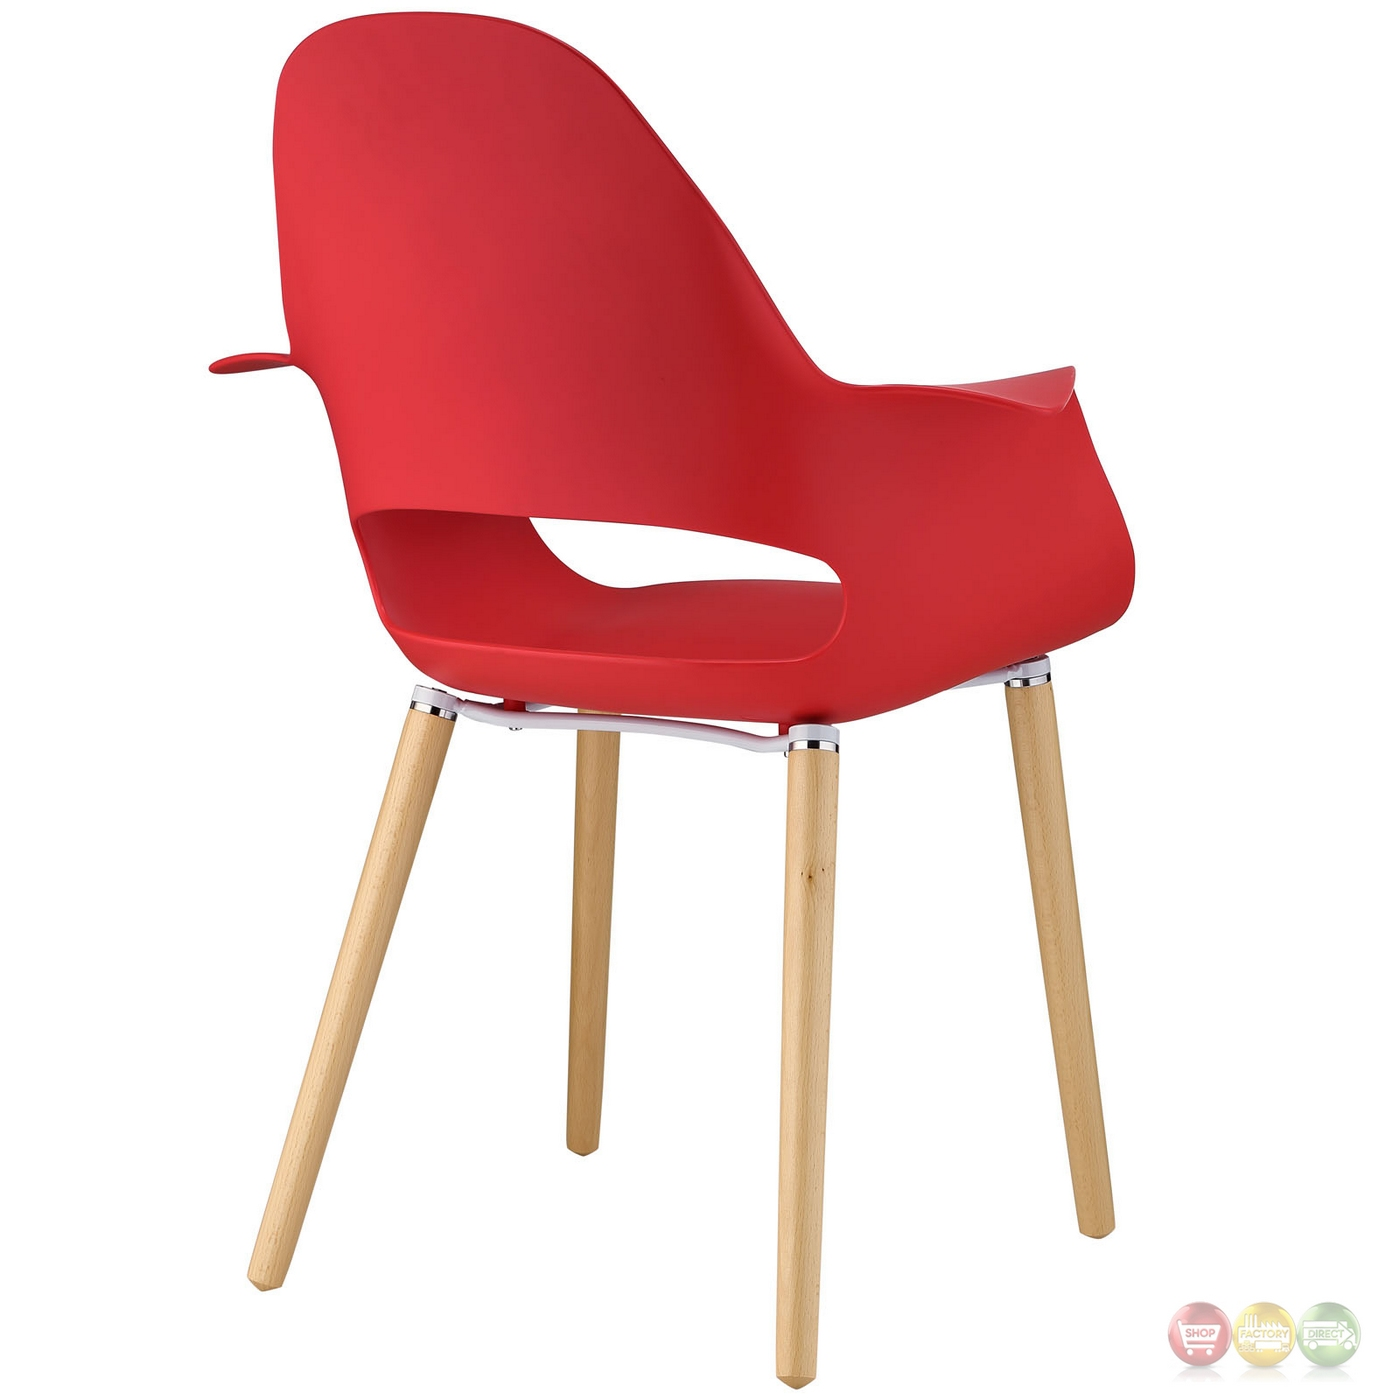 Choosy about chairs katy lifestyles amp homes magazine katy - Making A Wood Cabinet Chair Arm